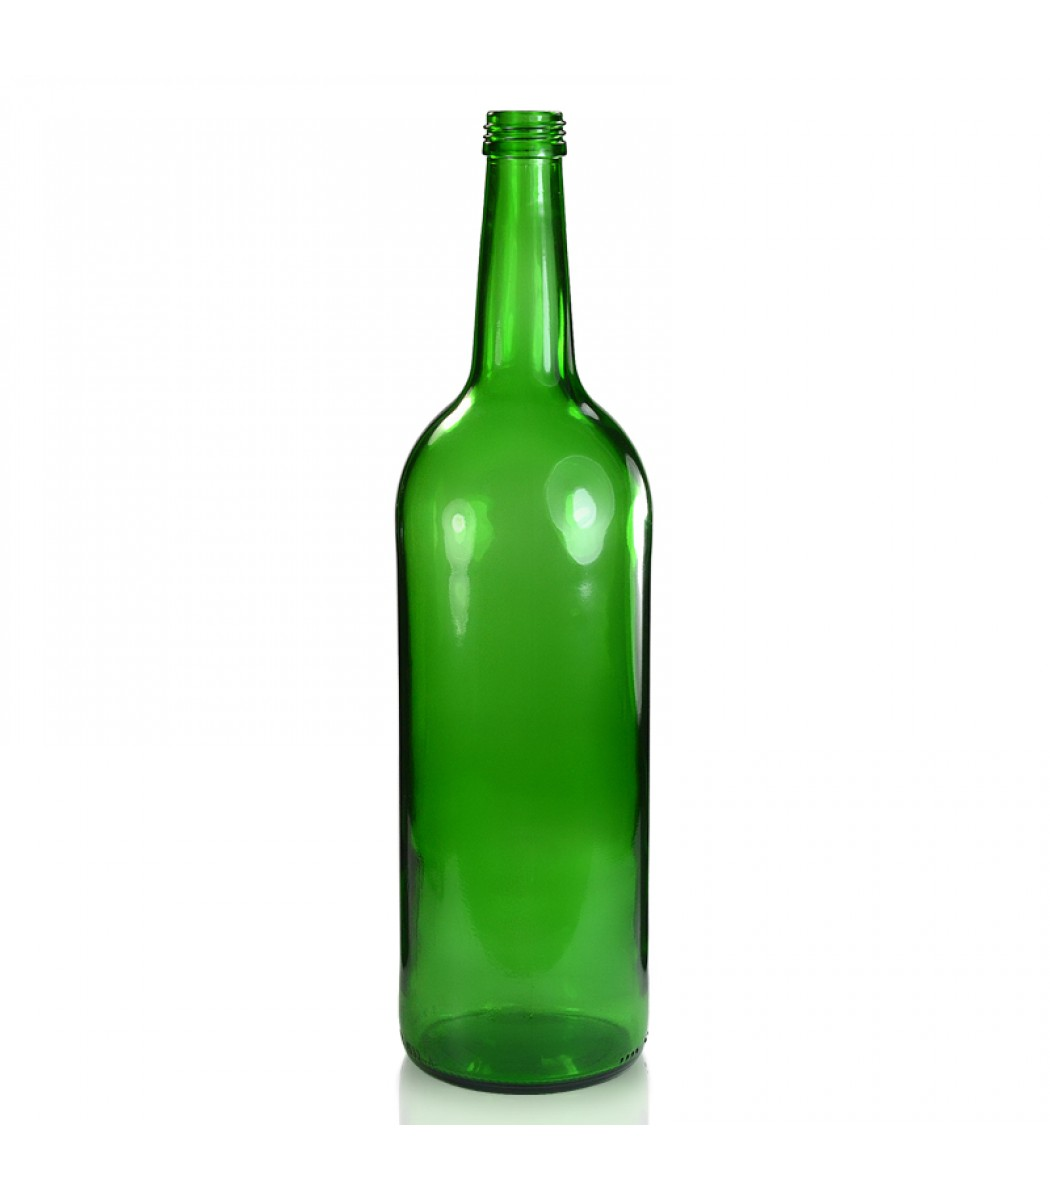 Green Glass Bottles Bing Images